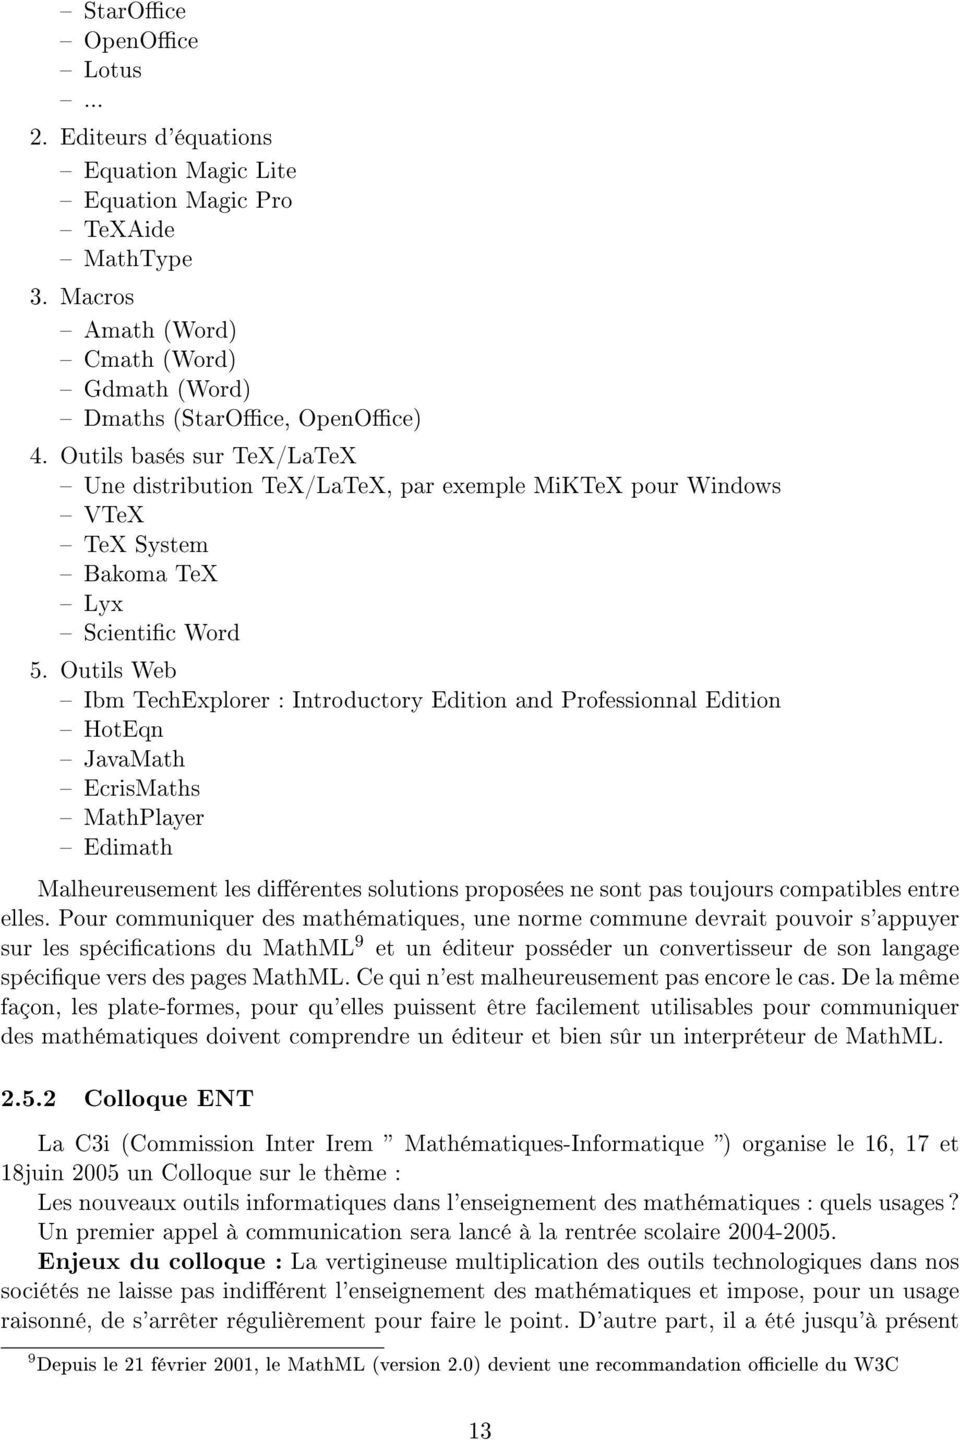 Outils Web Ibm TechExplorer : Introductory Edition and Professionnal Edition HotEqn JavaMath EcrisMaths MathPlayer Edimath Malheureusement les diérentes solutions proposées ne sont pas toujours